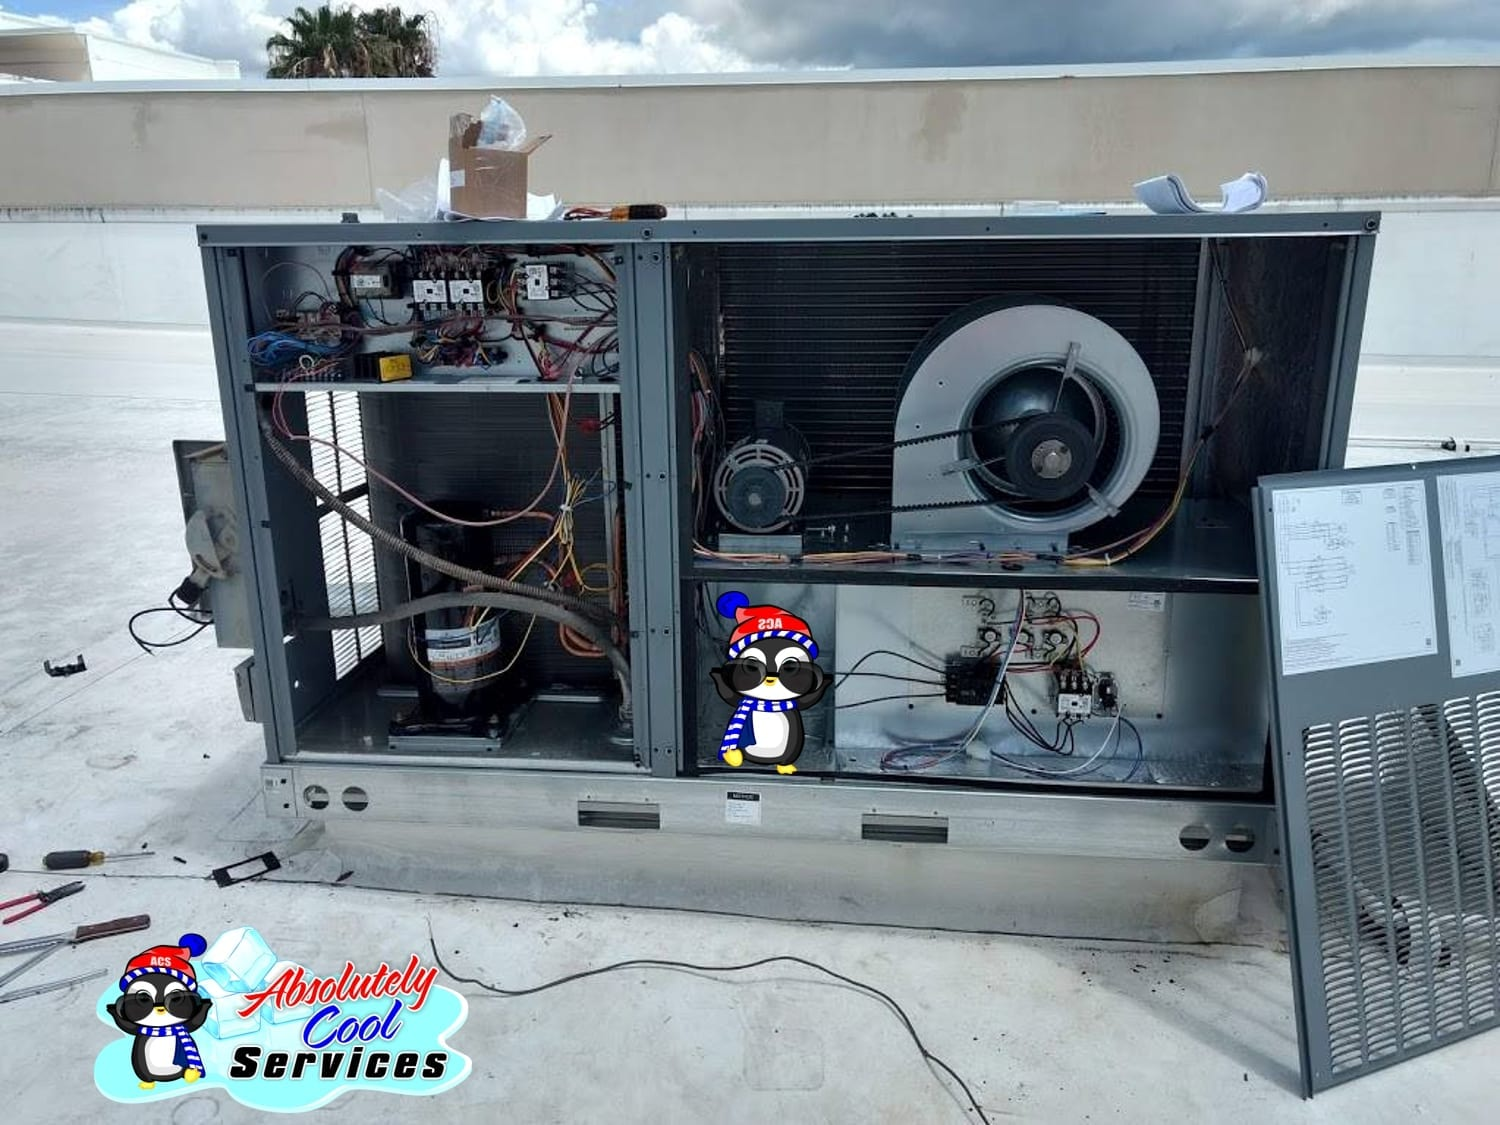 Roof Air Conditioning | Air Conditioning Maintenance Company near Loxahatchee